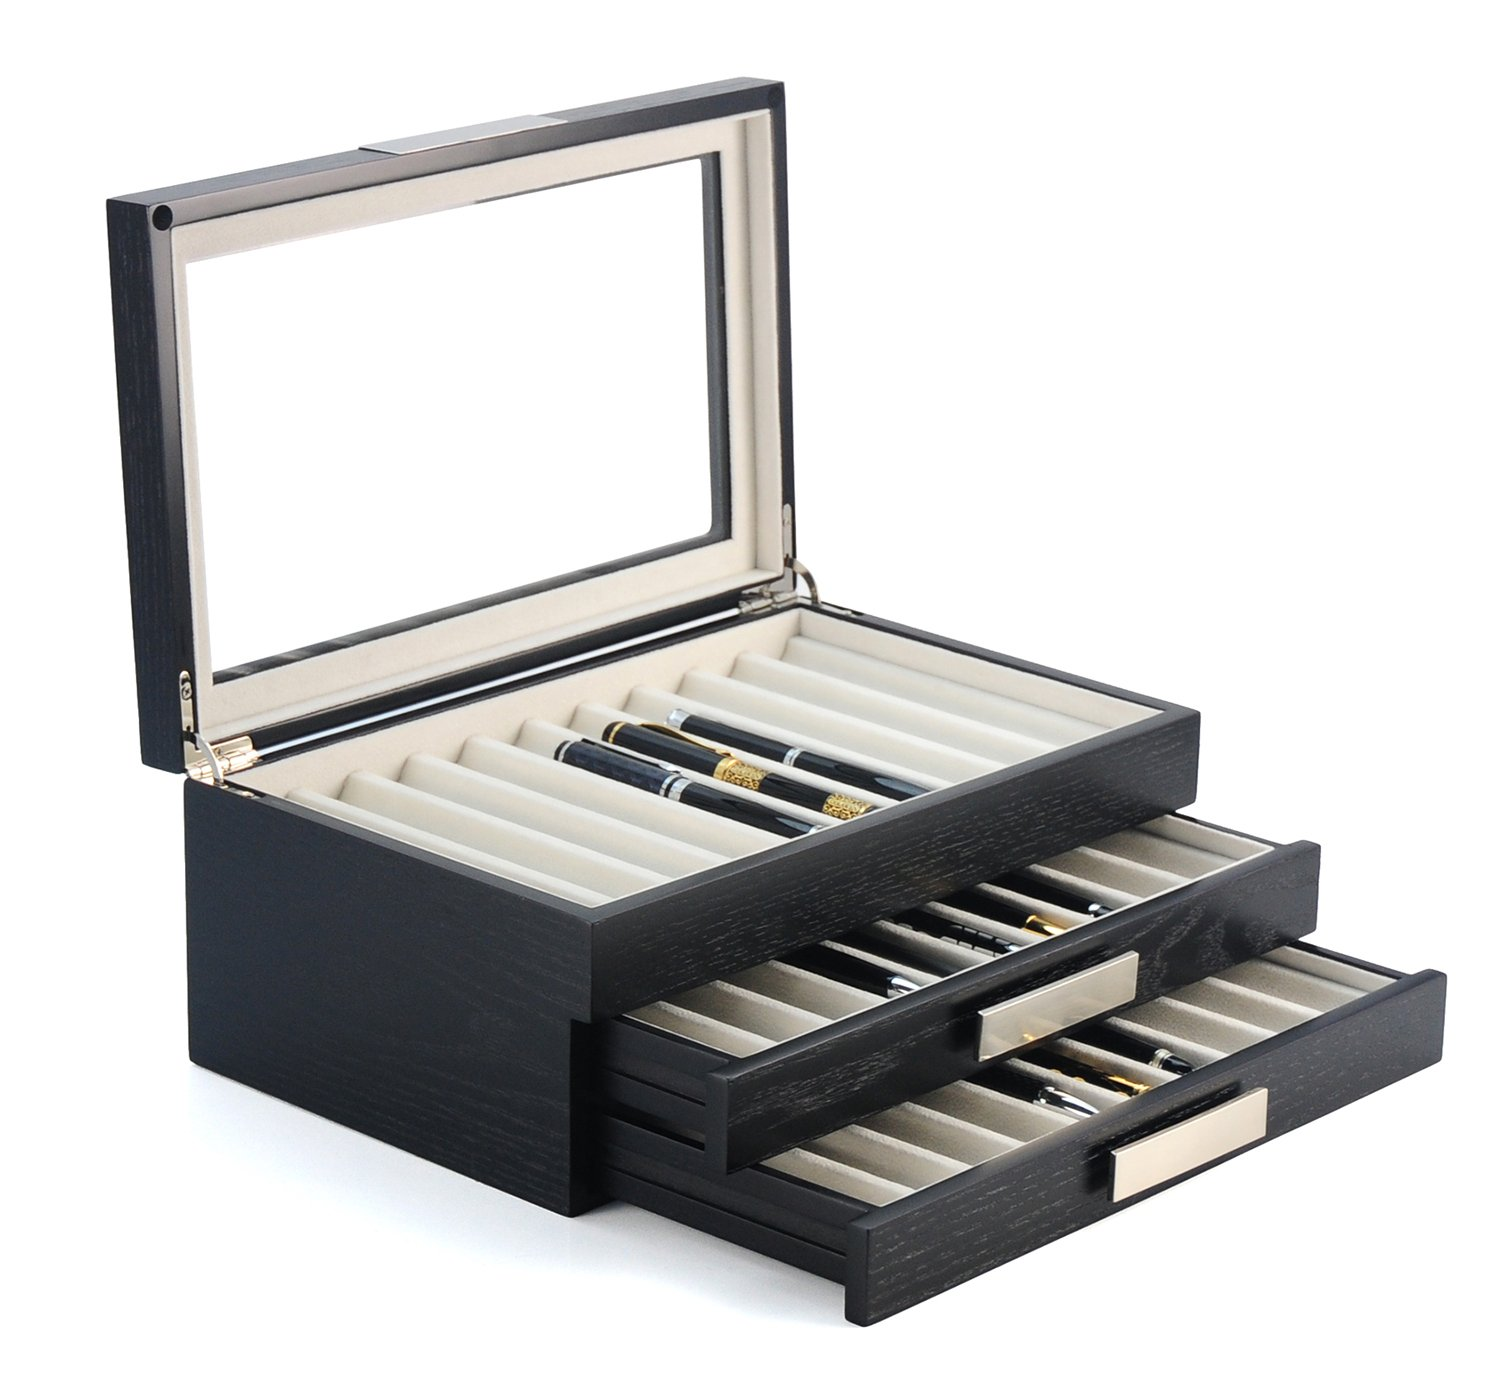 30 Piece Black Ebony Wood Pen Display Case Storage and Fountain Pen Collector Large Organizer Box with Glass Window Three Level Display Case with Drawers